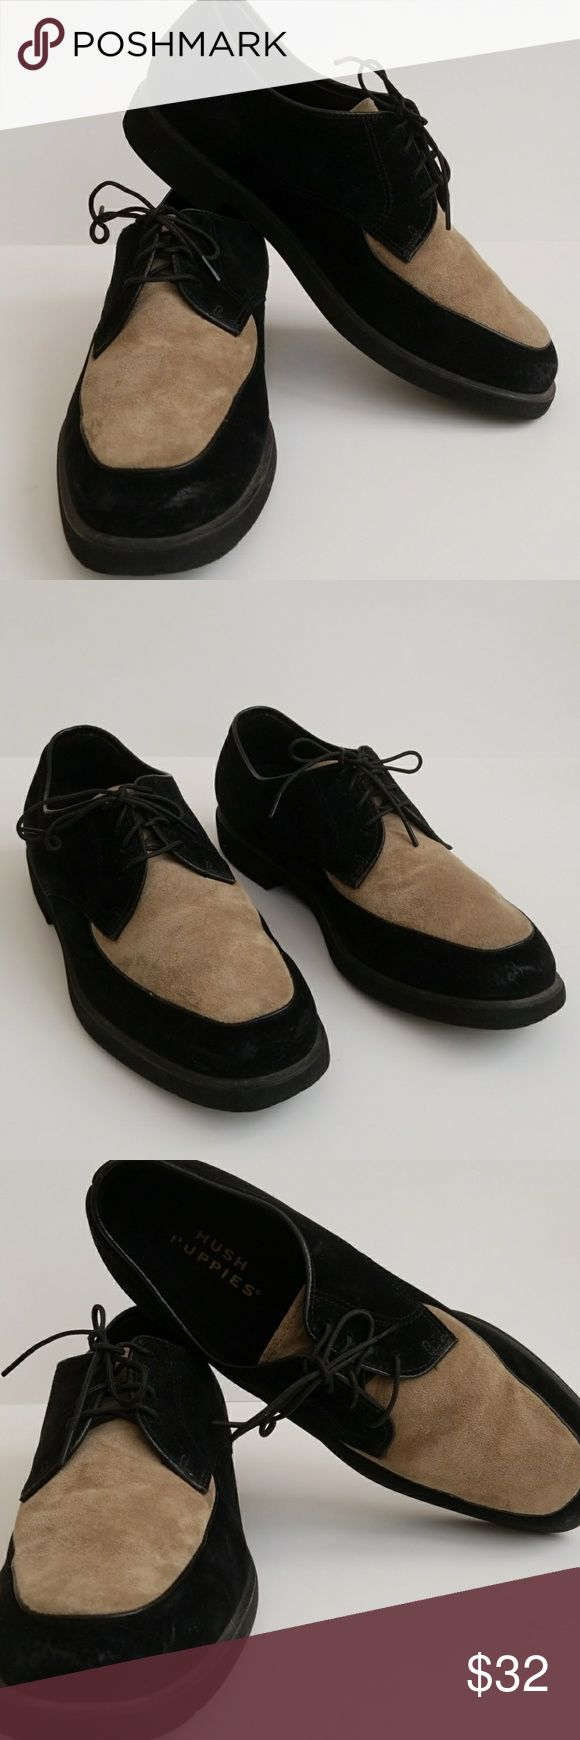 "Hush Puppies Suede Shoes Hush Puppies Suede Shoes. Men, Size 10 N, two tone, black and tan, lace-up, 1"" heels, slight marks on toes, soles in great condition as seen in pictures, suede leather. Hush Puppies Shoes Oxfords & Derbys"